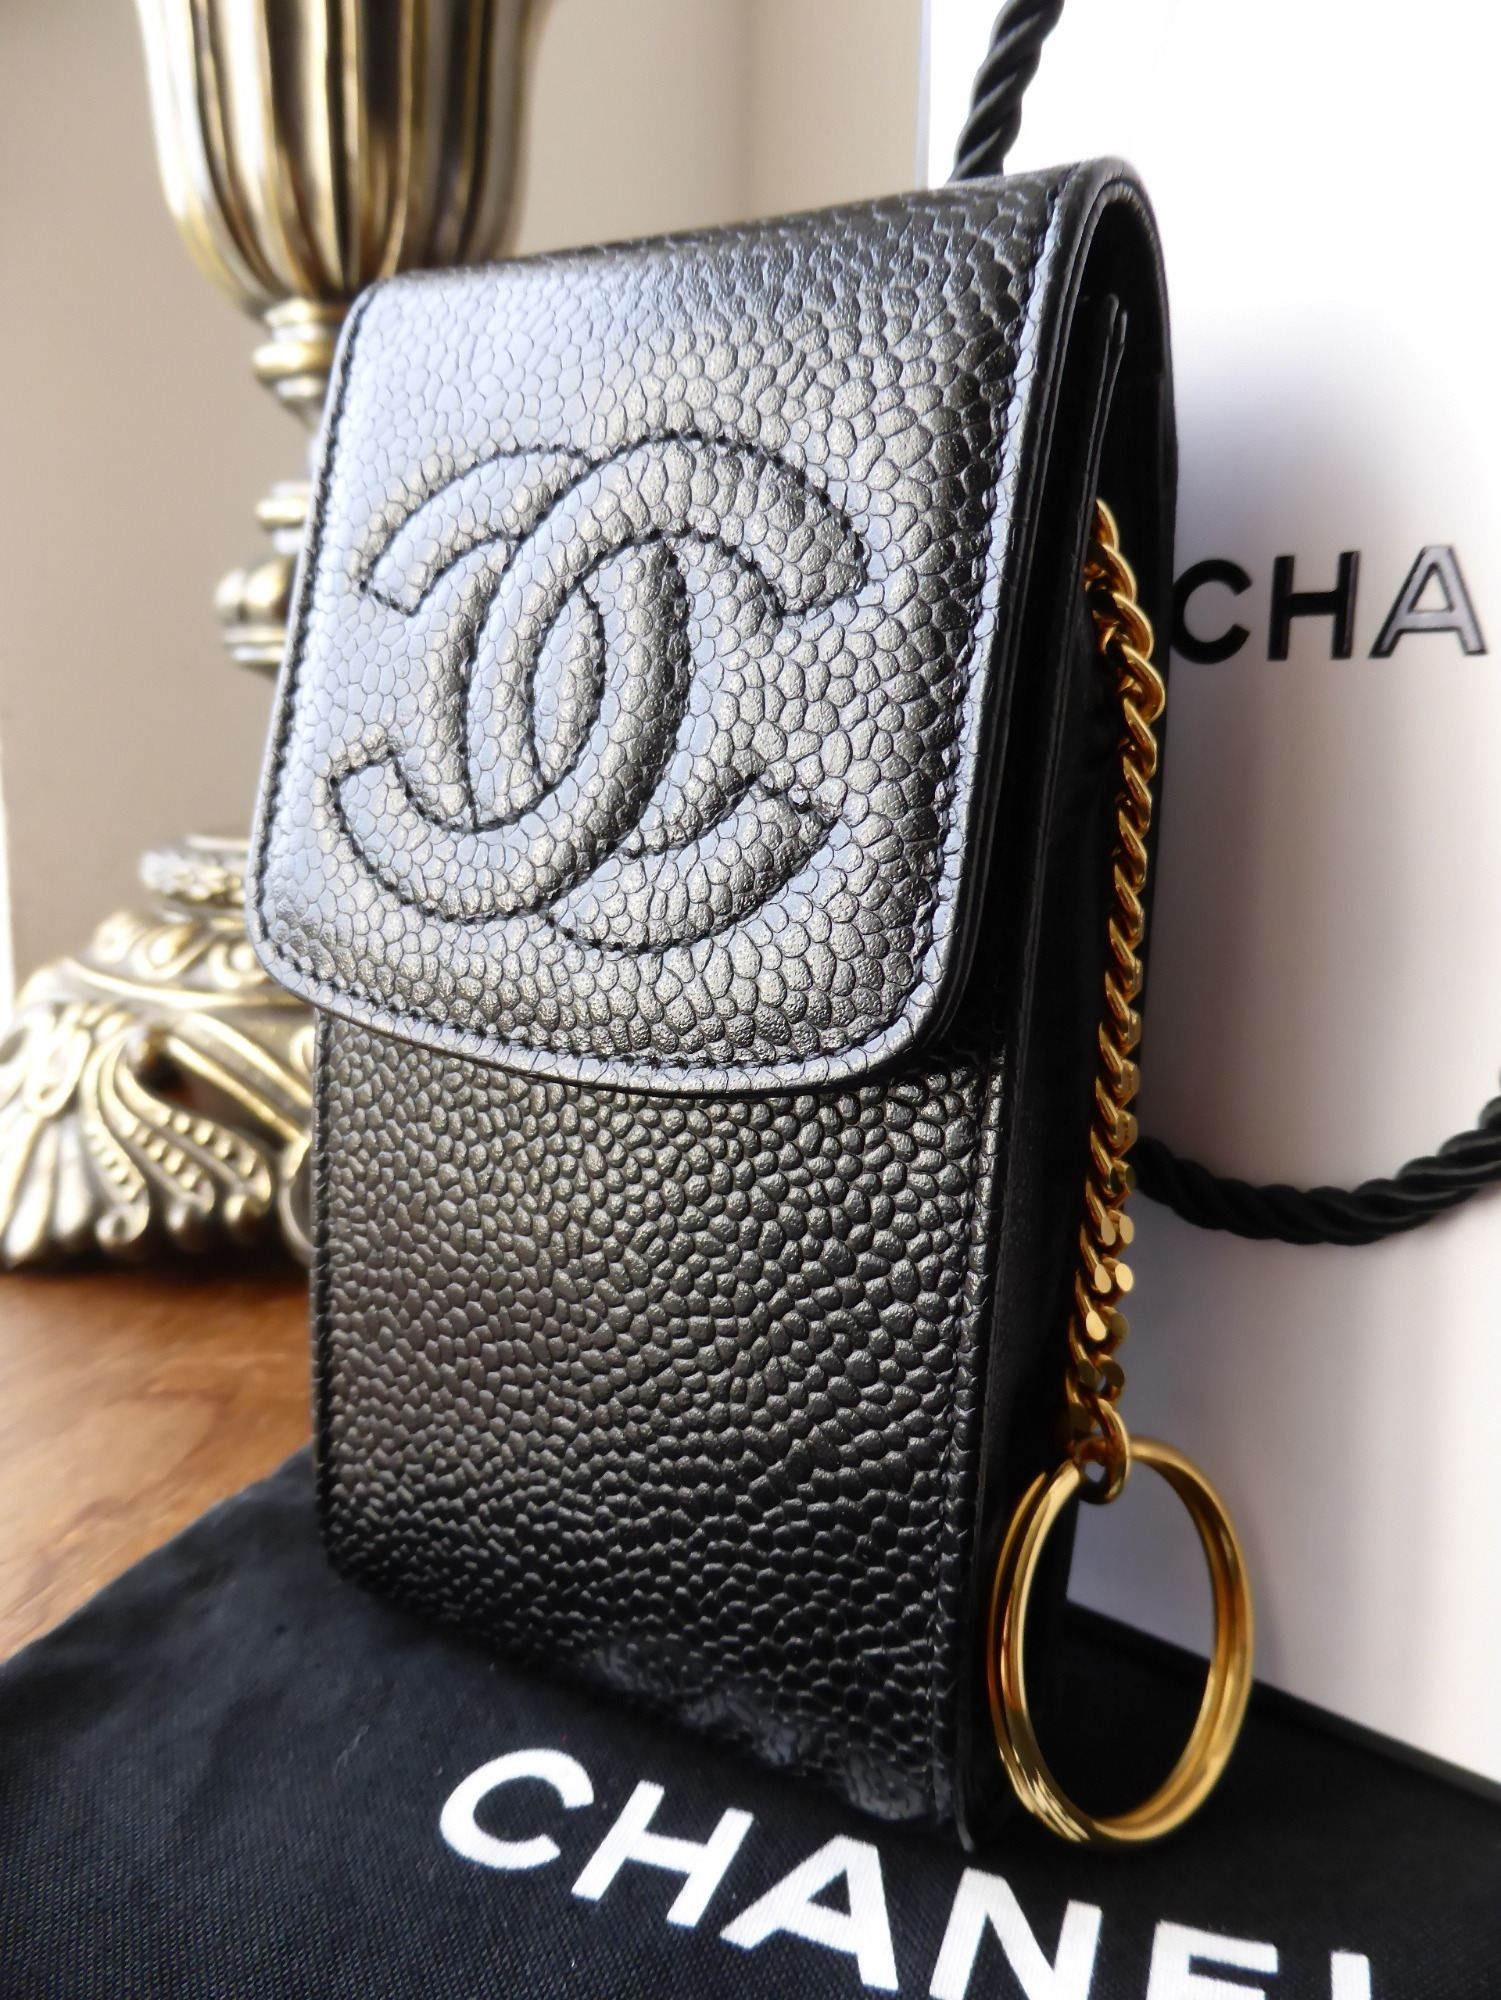 fbd8e40e920c Chanel Phone Case Pouch in Black Caviar with Gold Keyring  gt  http